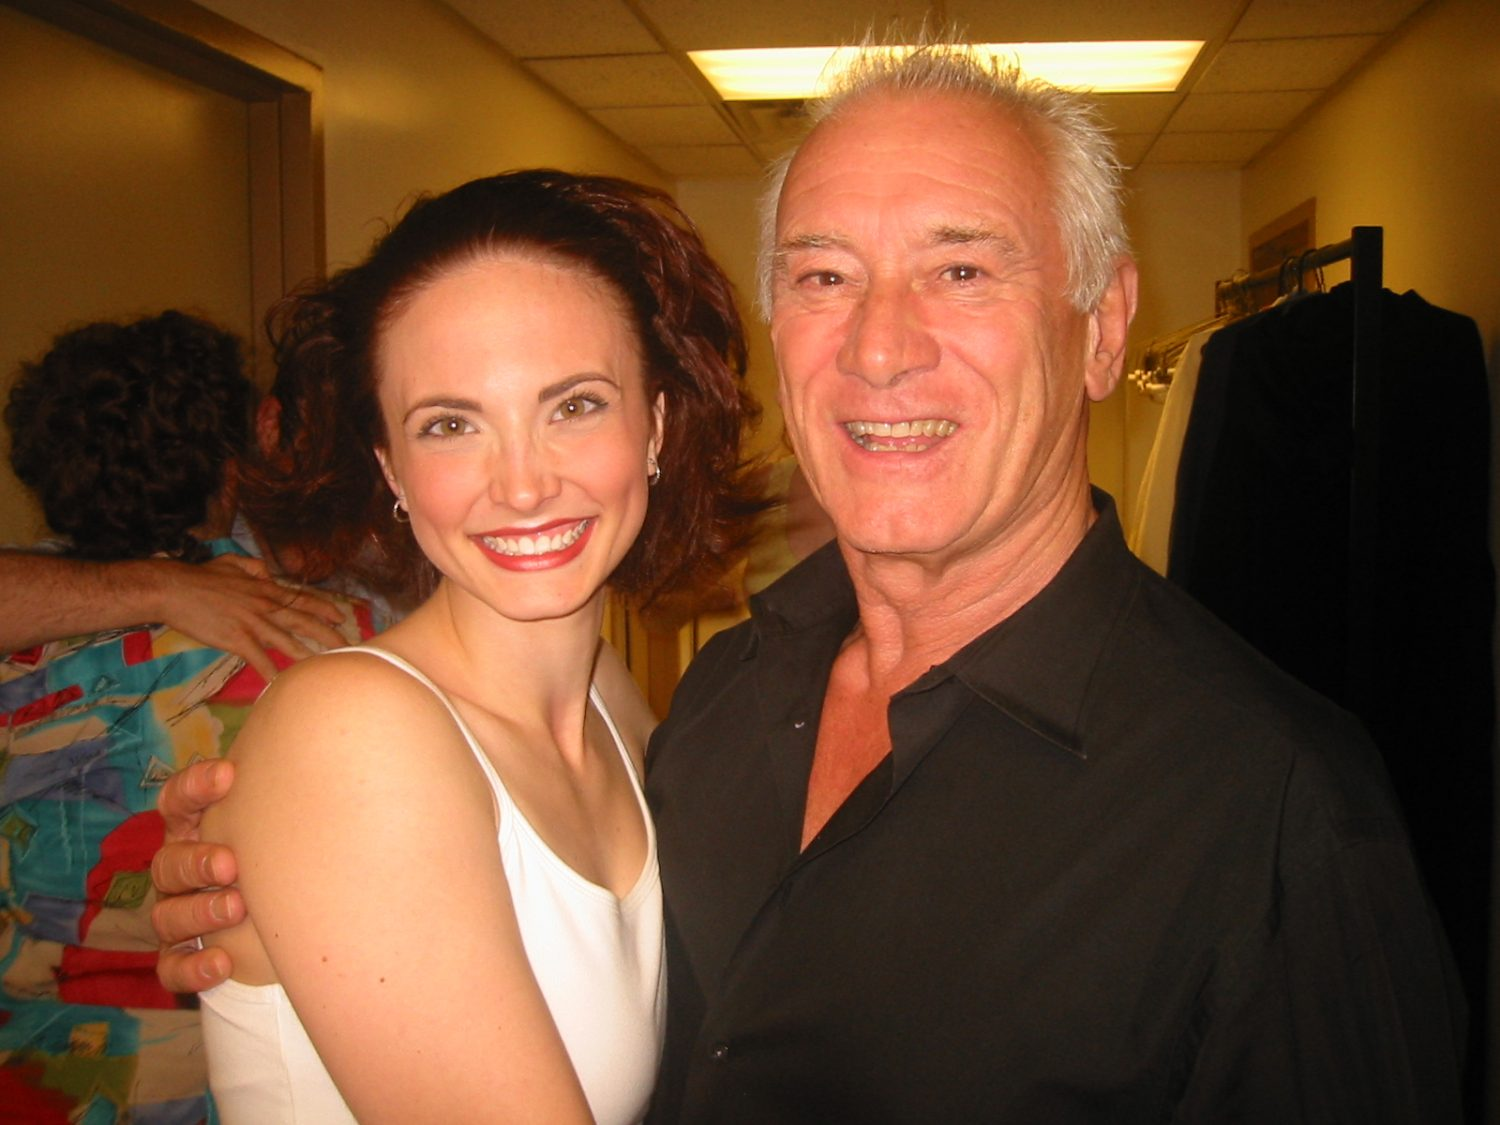 Backstage at Shakespeare Theatre Company with director Keith Baxter in Washington, DC, 2008